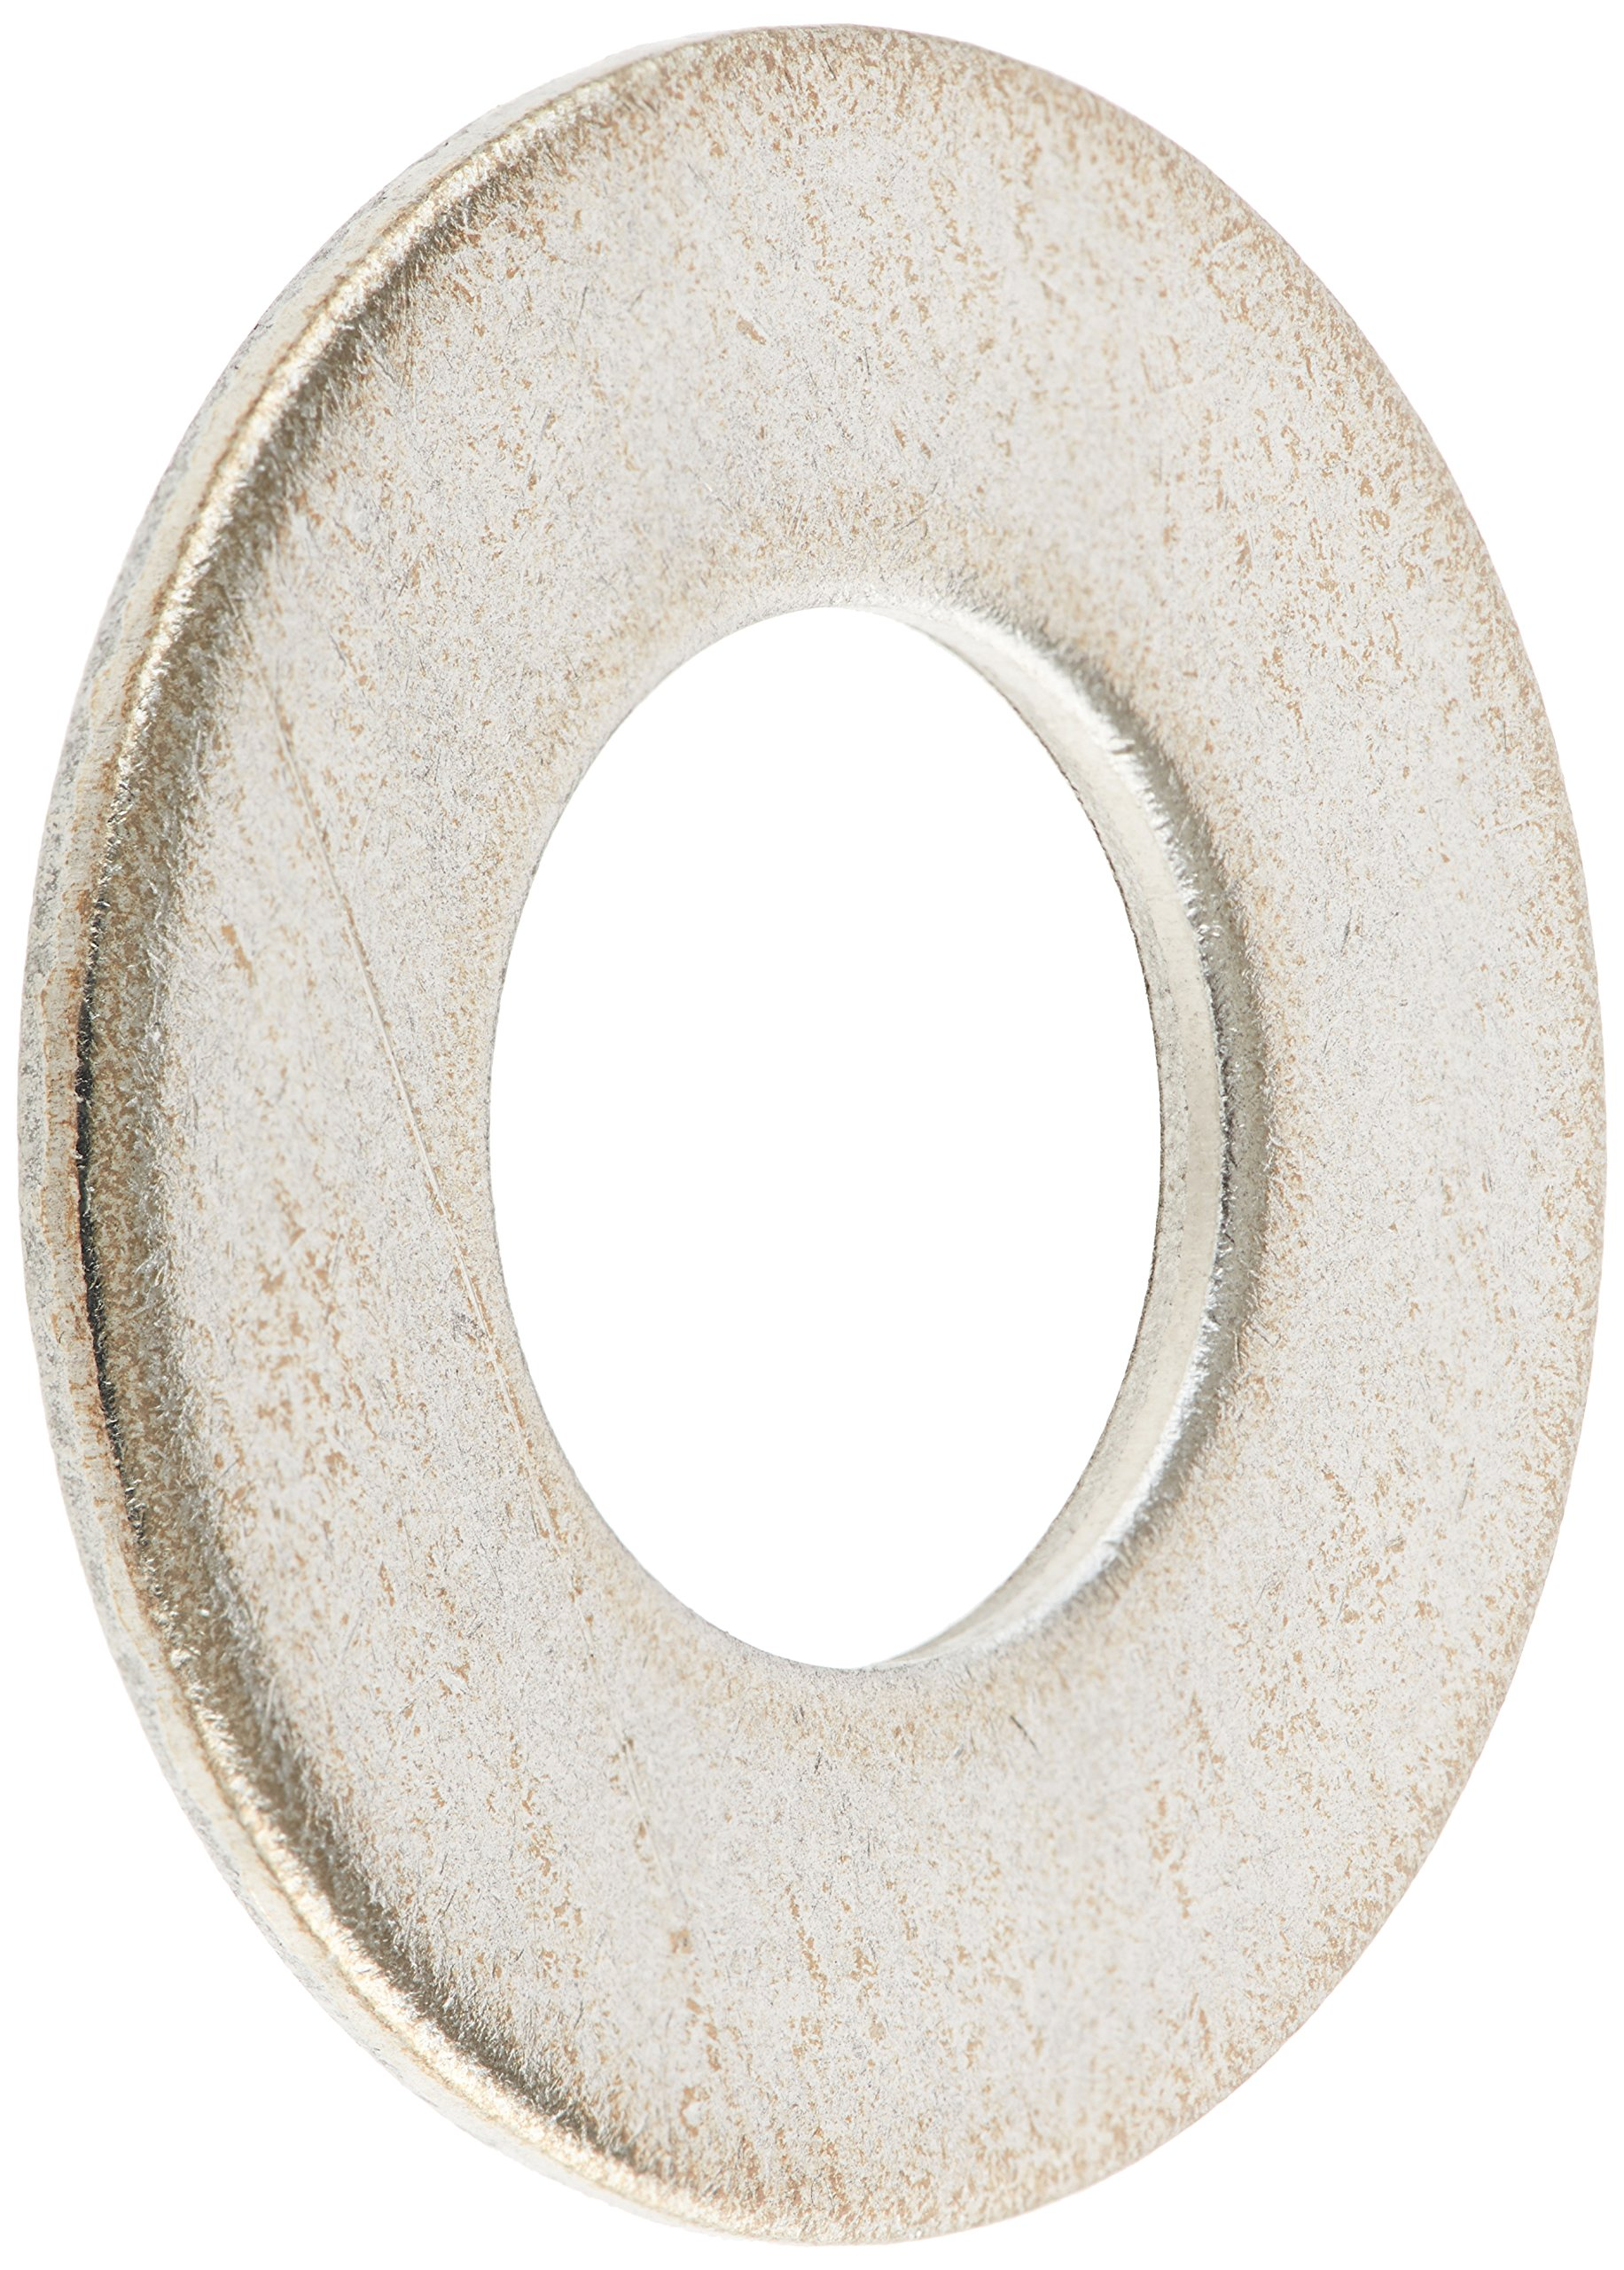 The Hillman Group 830516 Stainless Steel 3/4-Inch Flat Washer, 20-Pack